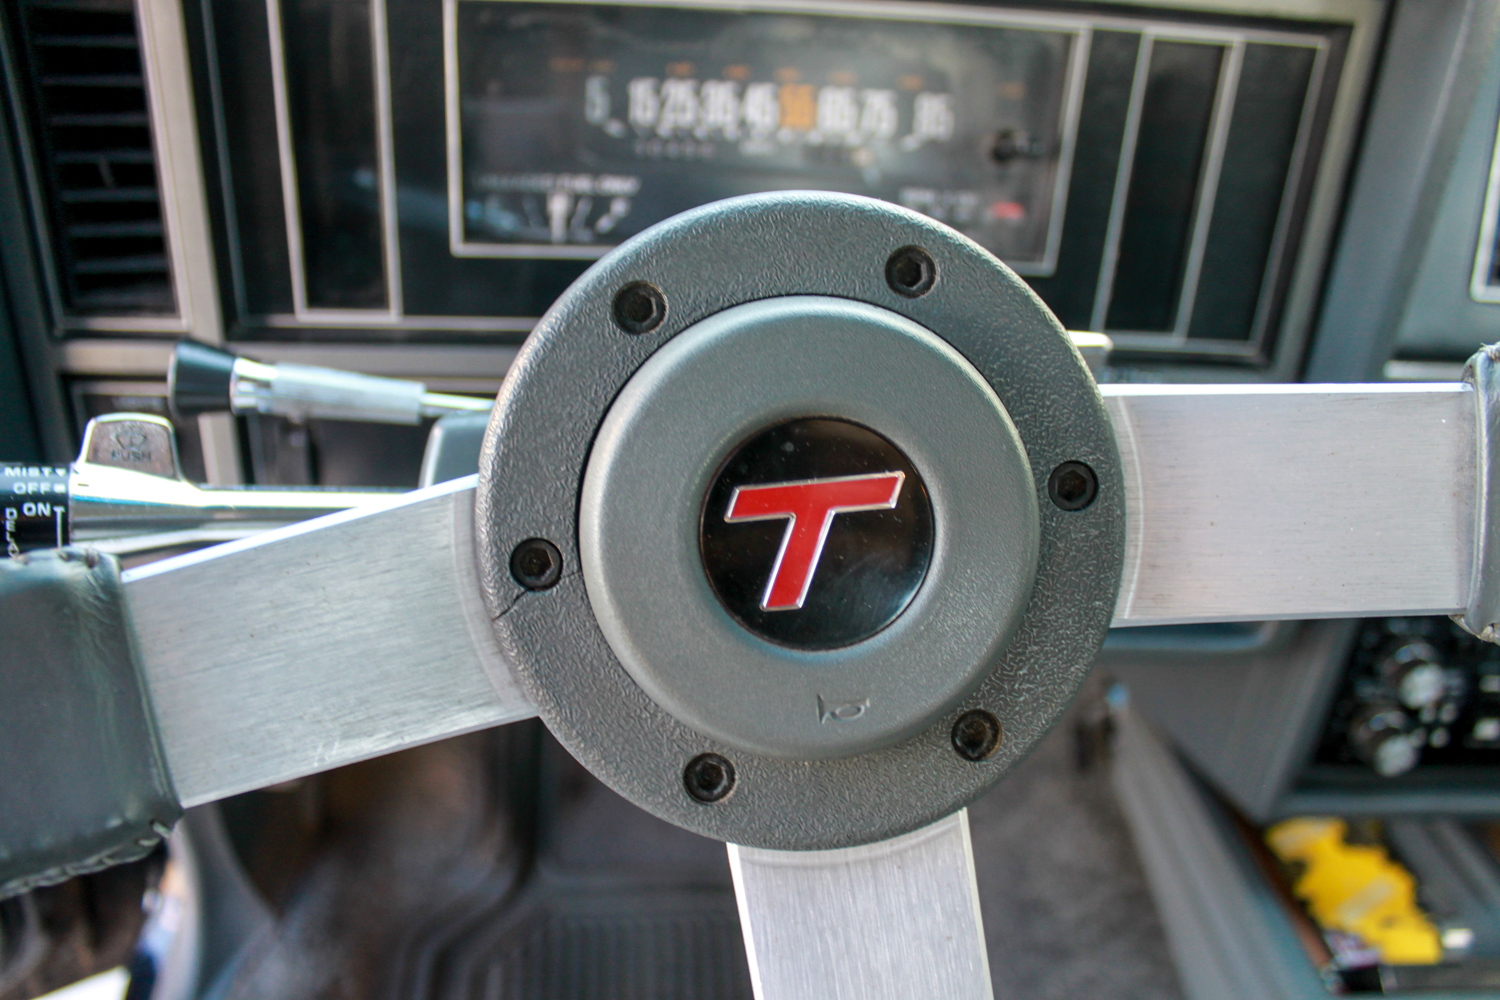 1987 Buick turbo-T center steering wheel